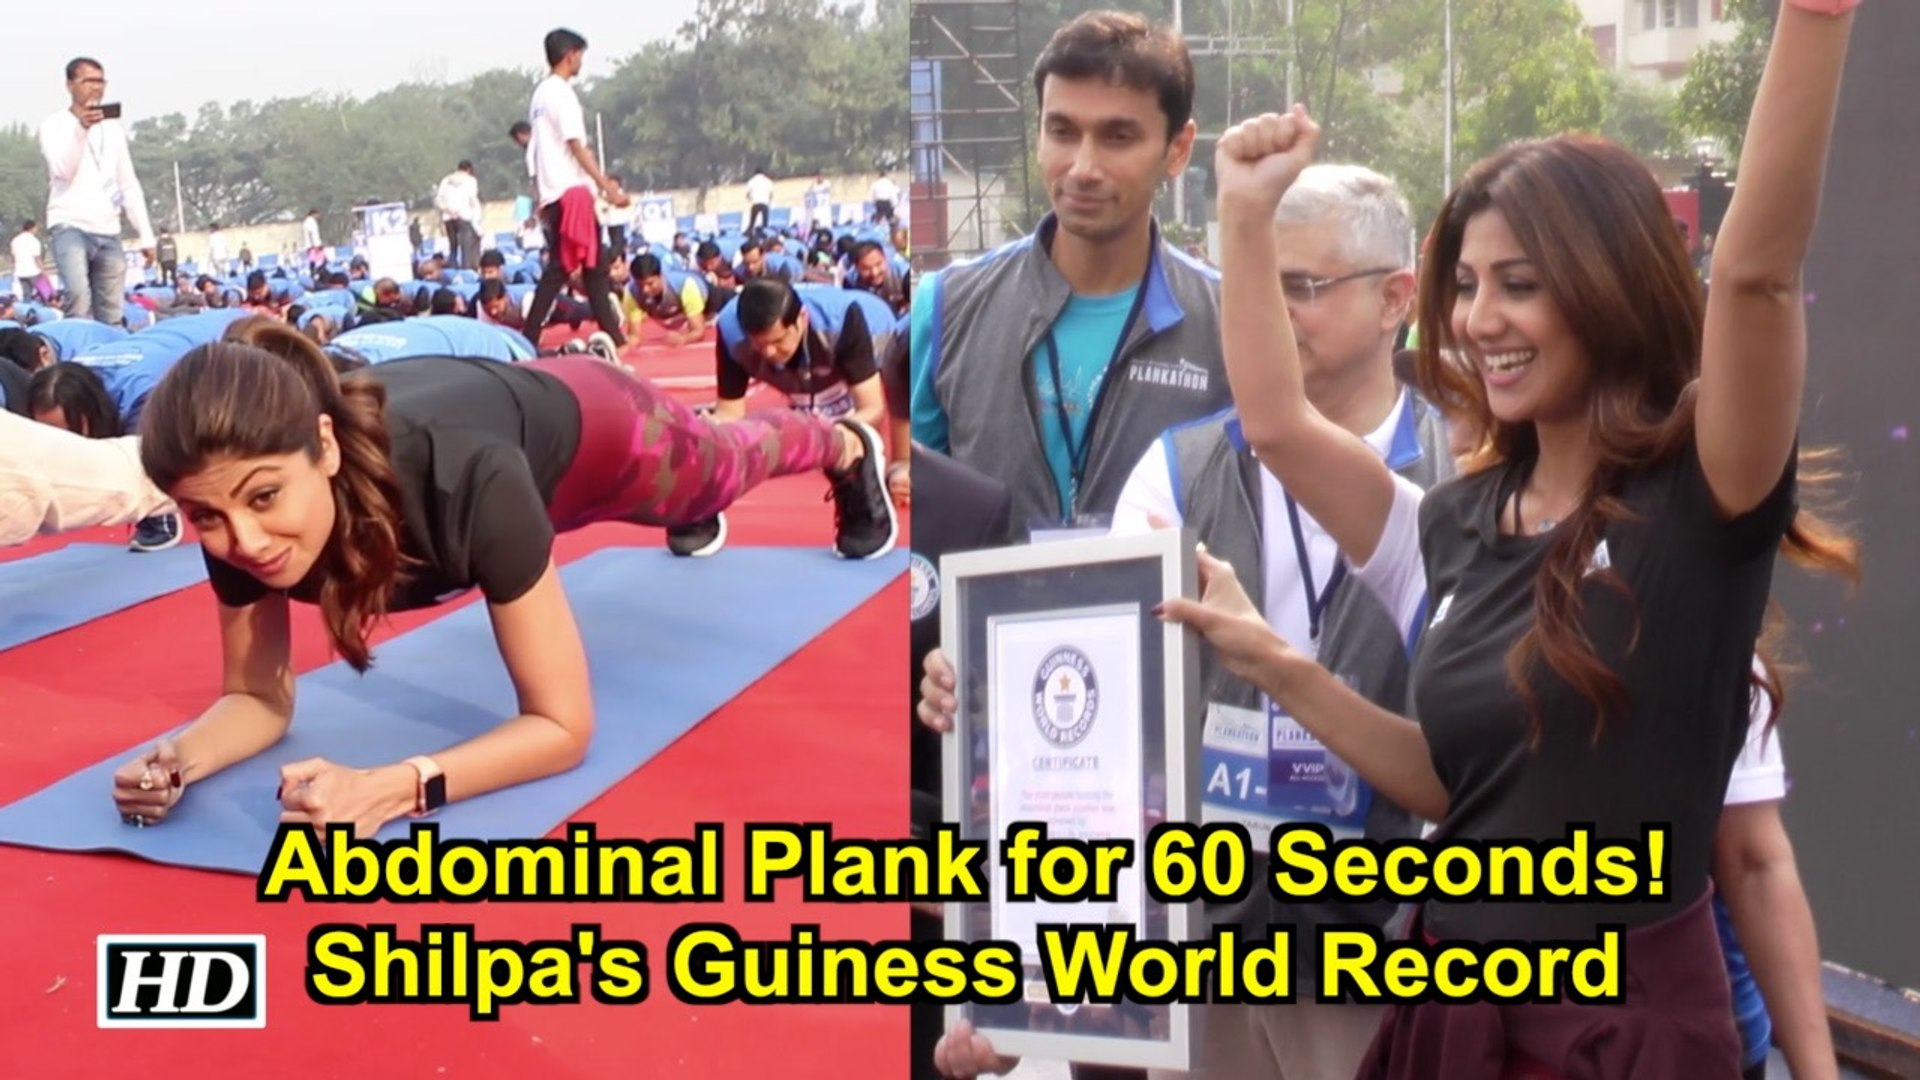 Abdominal Plank for 60 Seconds! Shilpa's Guiness World Record